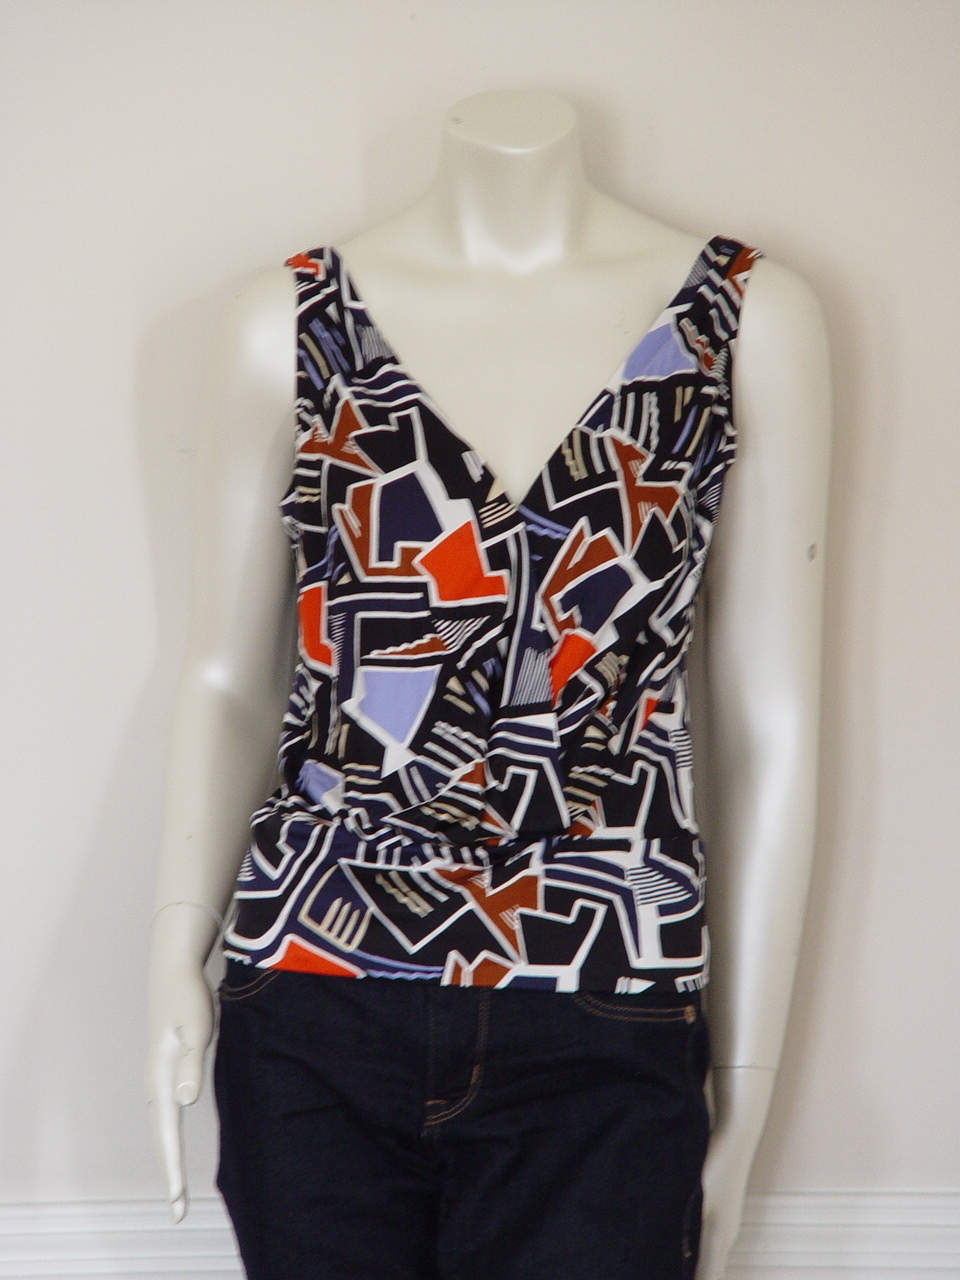 DIANE von FURSTENBERG  VAIL SMALL ABSTRACTED BOAT TOP BLOUSE - US 6 - UK 10